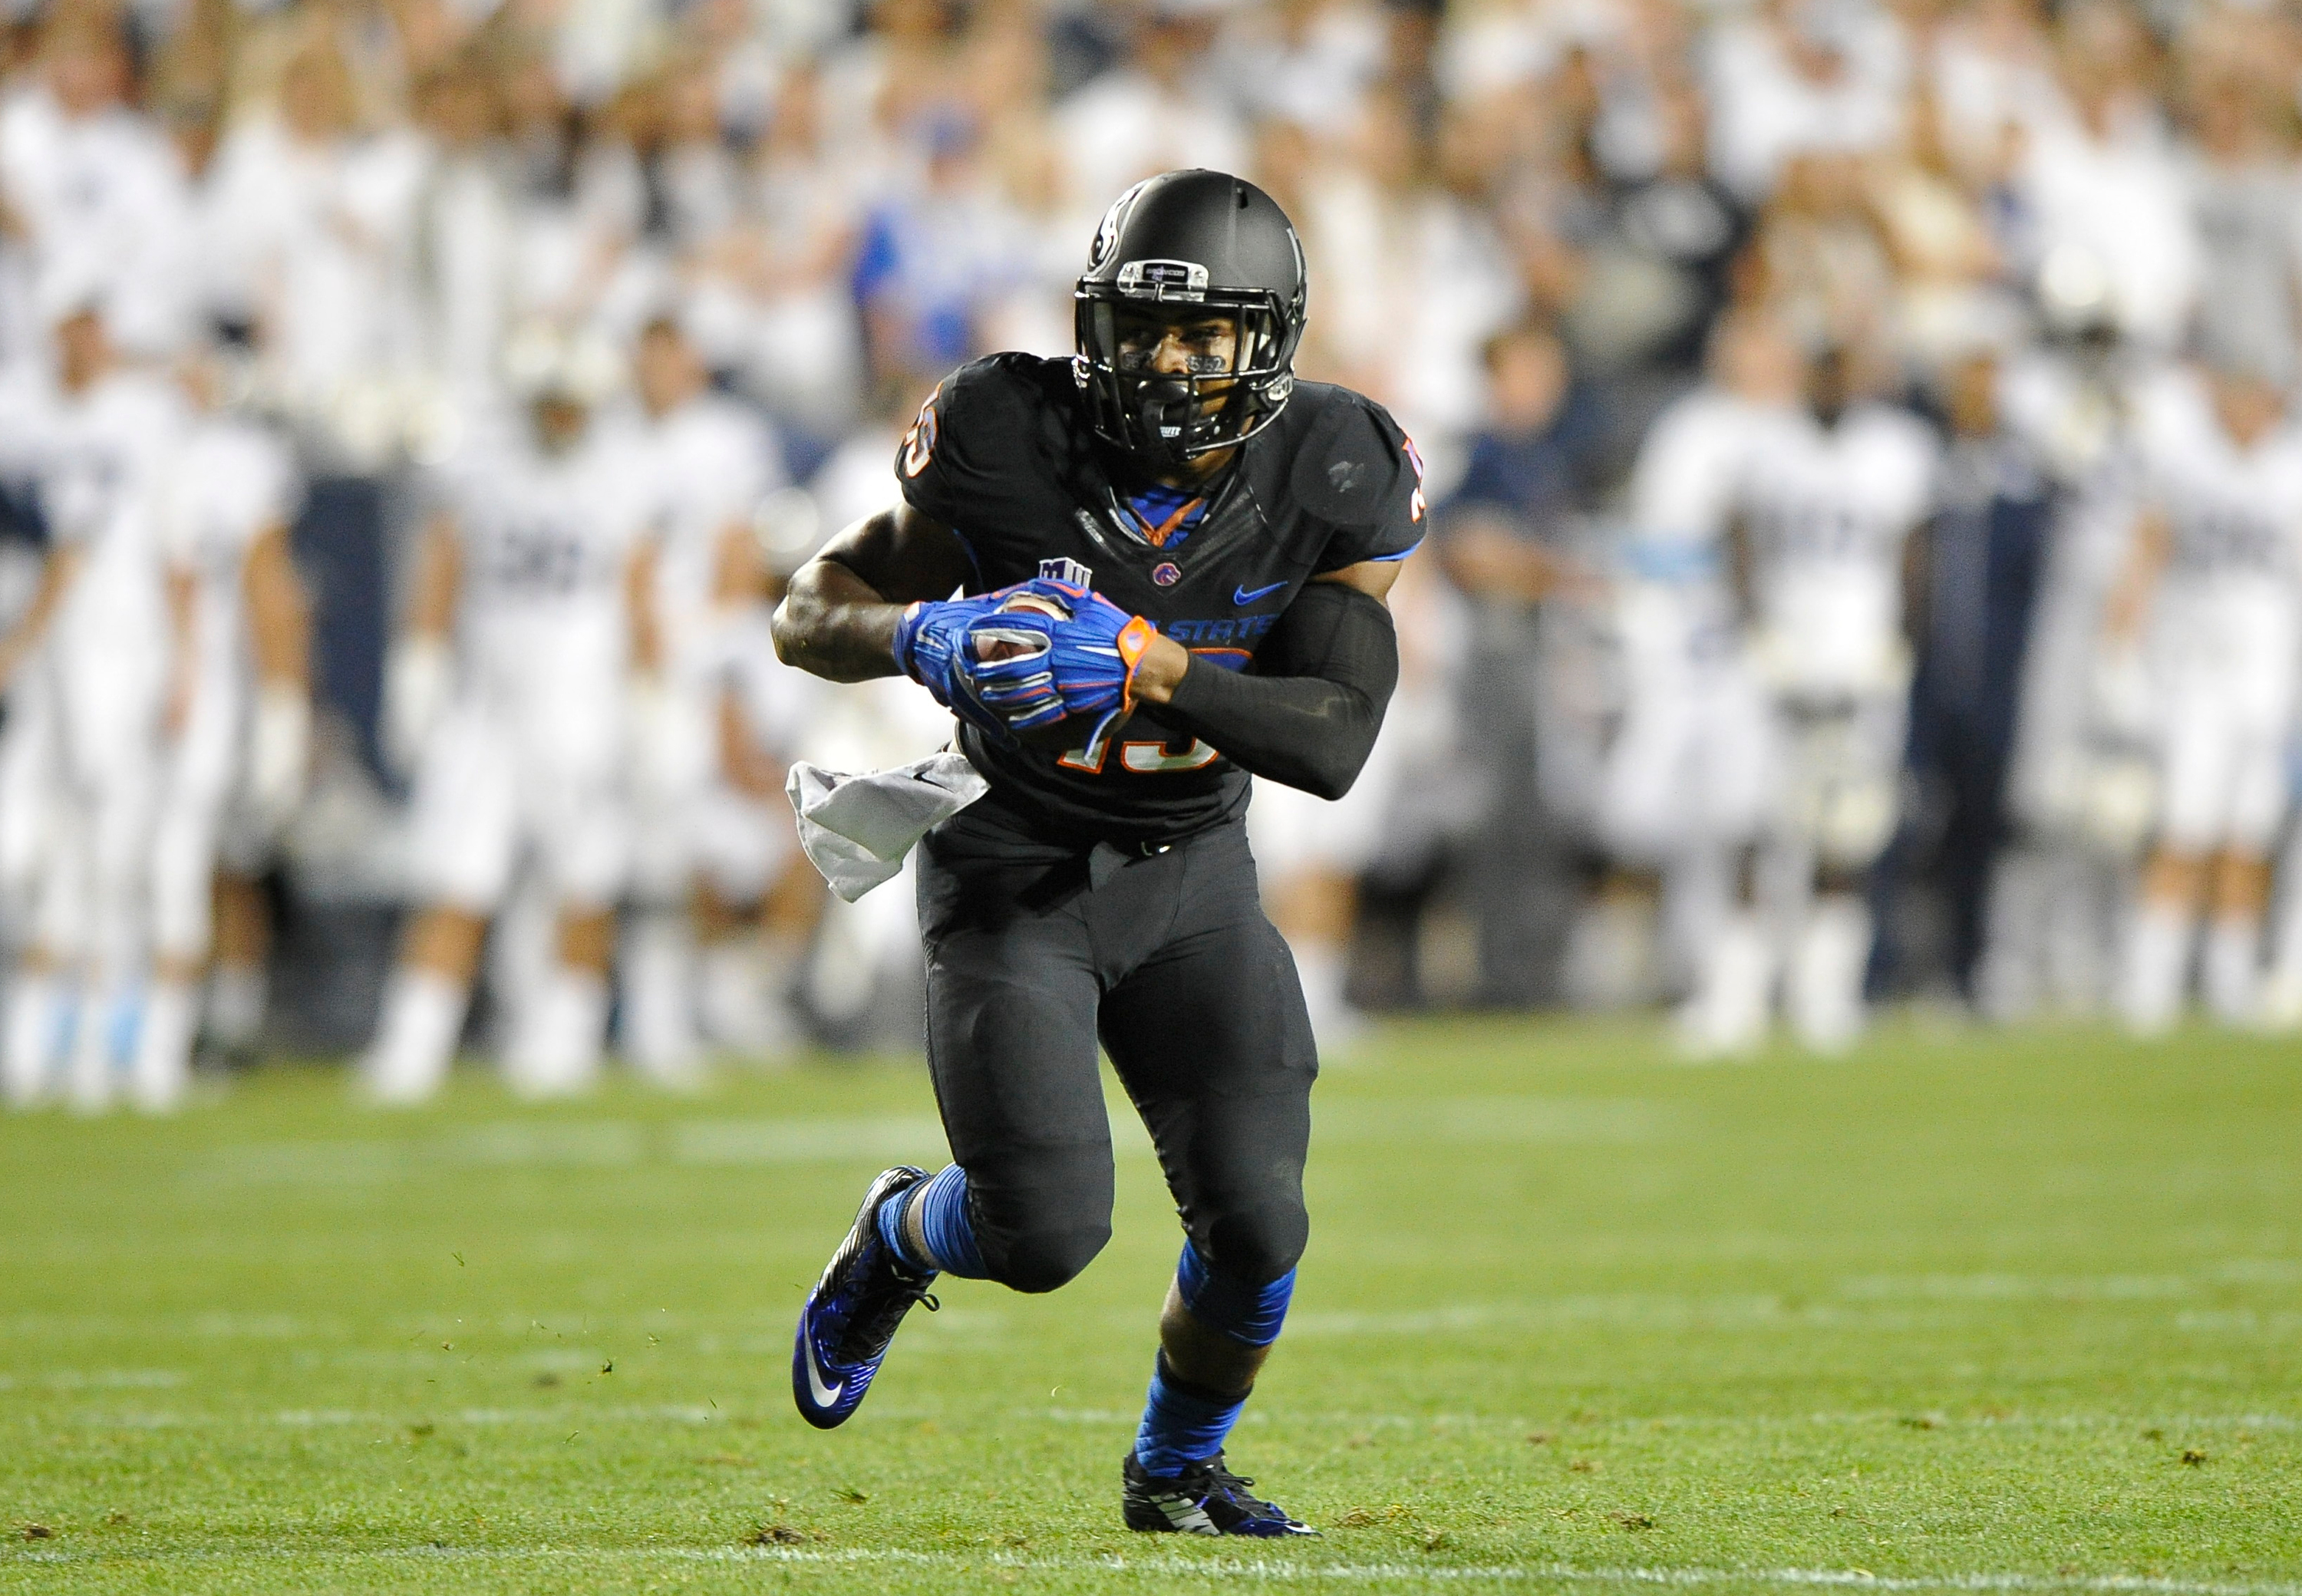 PROVO, UT - SEPTEMBER 12: Jeremy McNichols #13 of the Boise State Broncos runs with the ball during their game against the Brigham Young Cougars at LaVell Edwards Stadium on September 12, 2015 in Provo, Utah. (Photo by Gene Sweeney Jr/Getty Images)